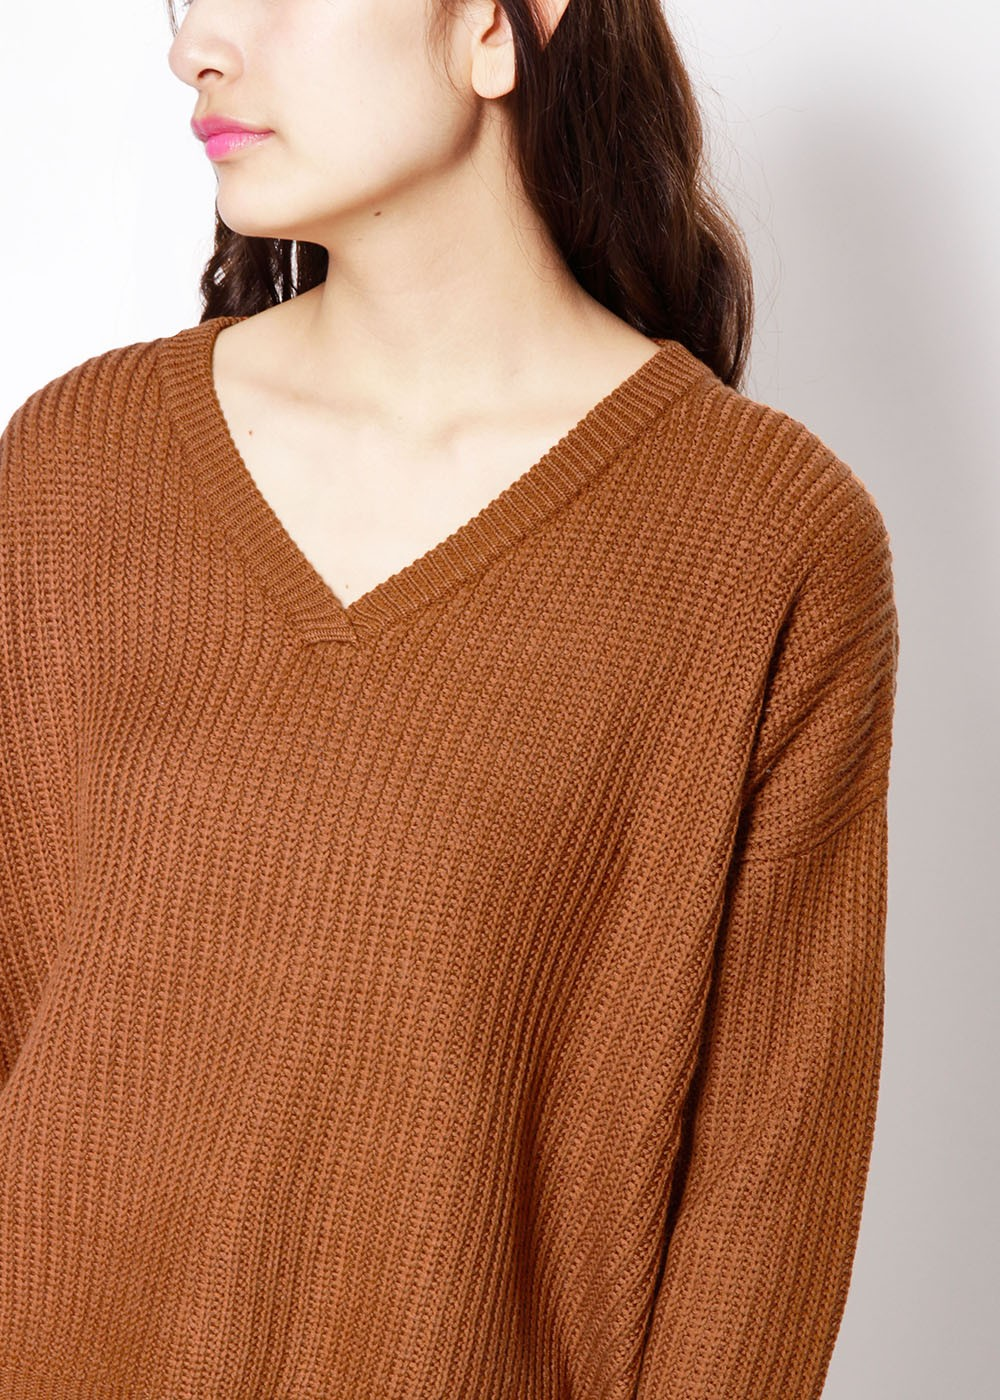 Vネックリブワイドニット|BROWN|ニット|URBAN RESEARCH warehouse Tops&Outer|最大80%OFF